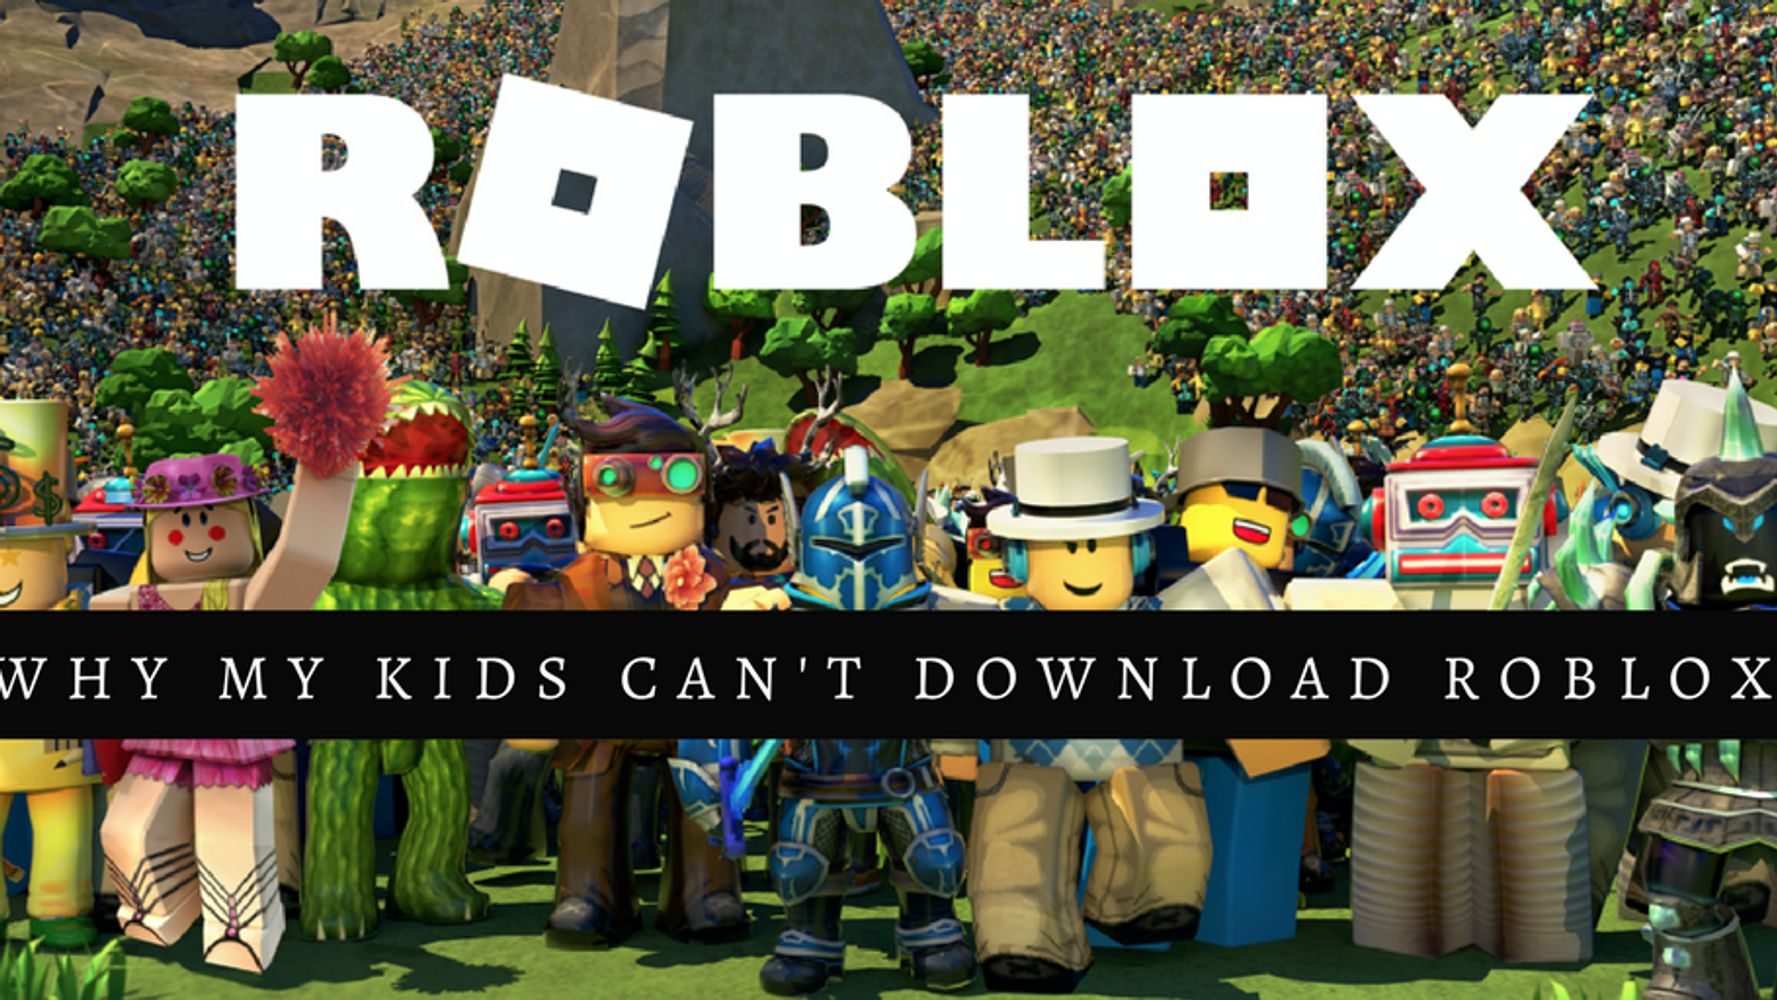 Why You Should Avoid Downloading Roblox on Your Electronics! | HuffPost